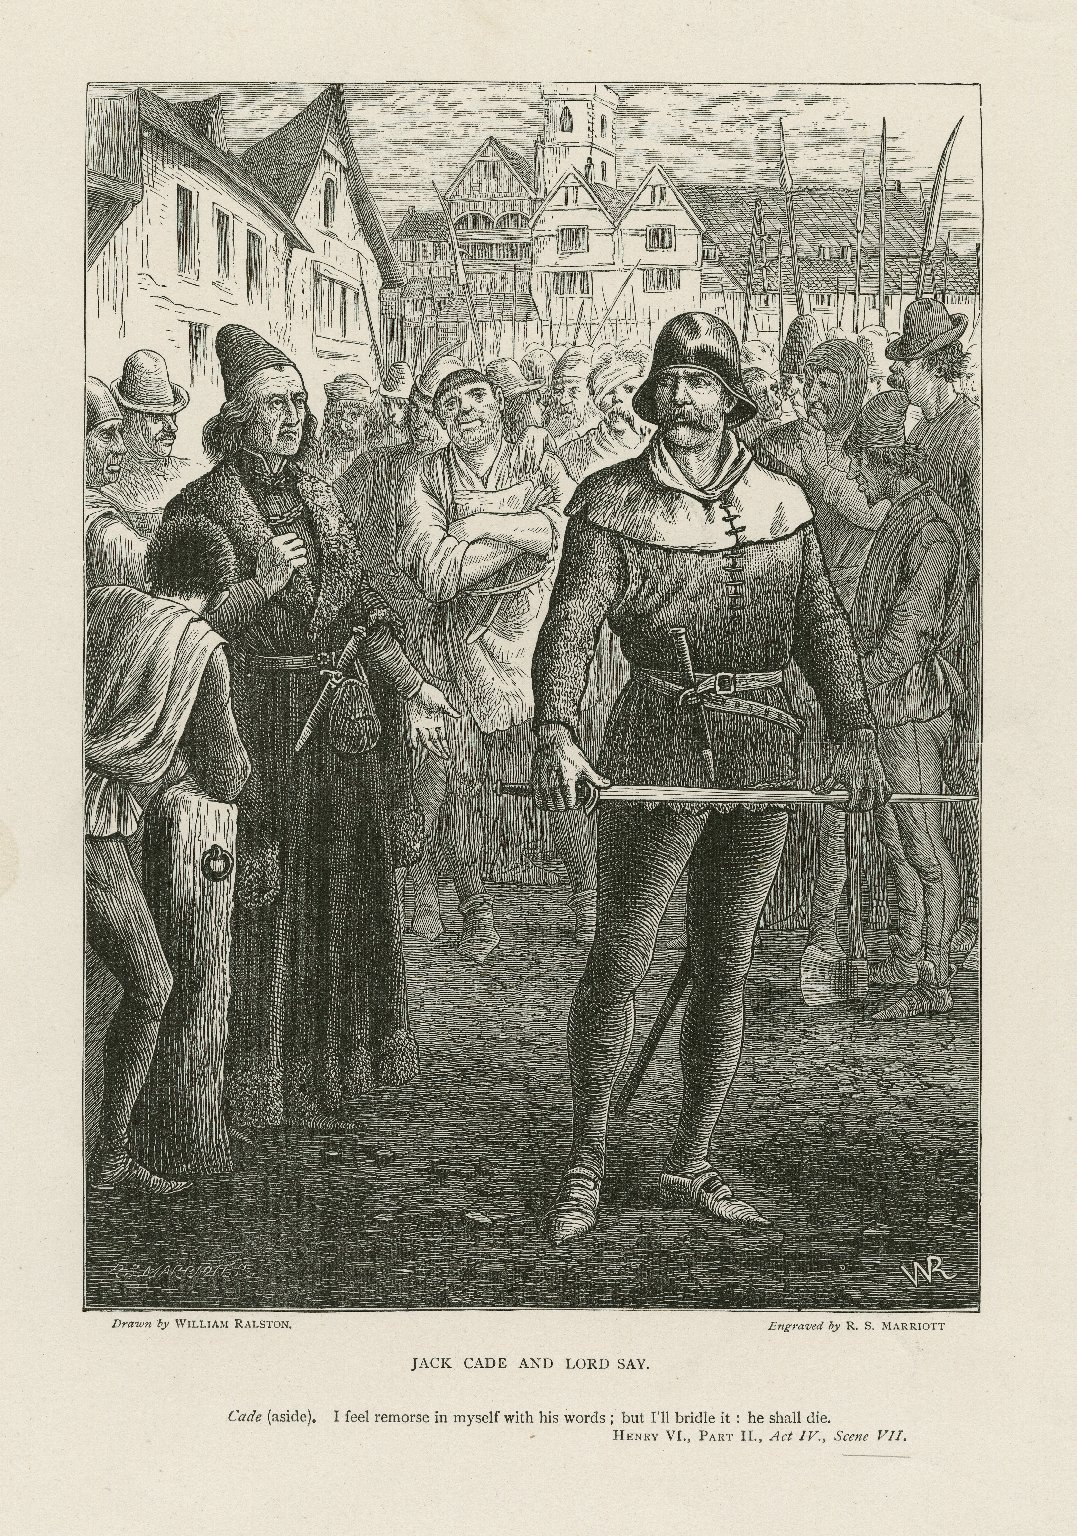 Jack Cade and Lord Say ... I feel remorse in myself with his words ... Henry VI, part II, act IV, scene VII [graphic] / drawn by William Ralston ; engraved by R.S. Marriott.